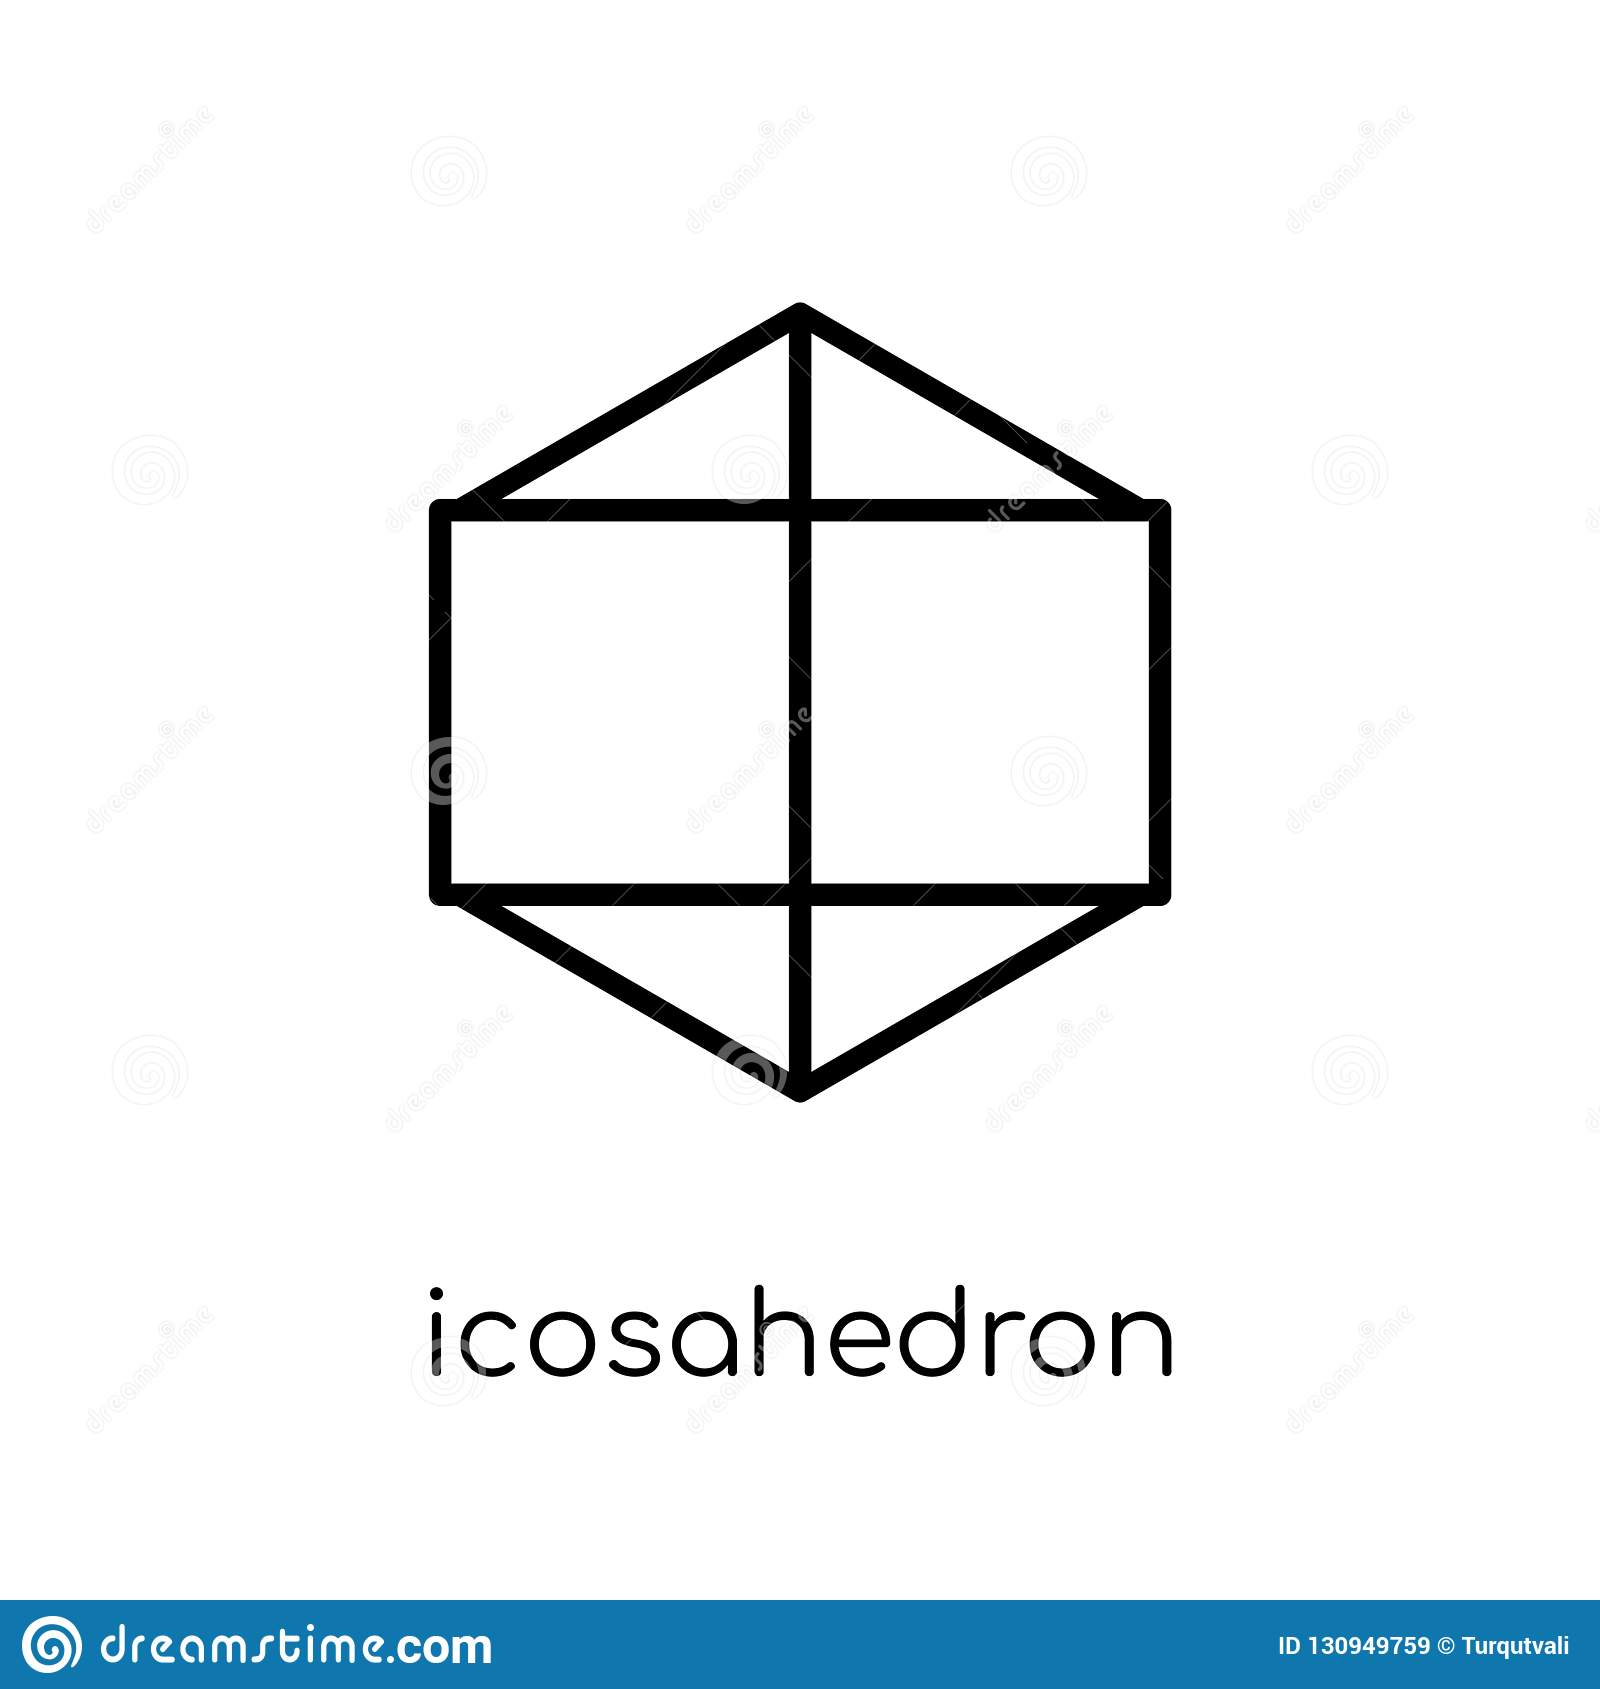 Icosahedron icon from Geometry collection.